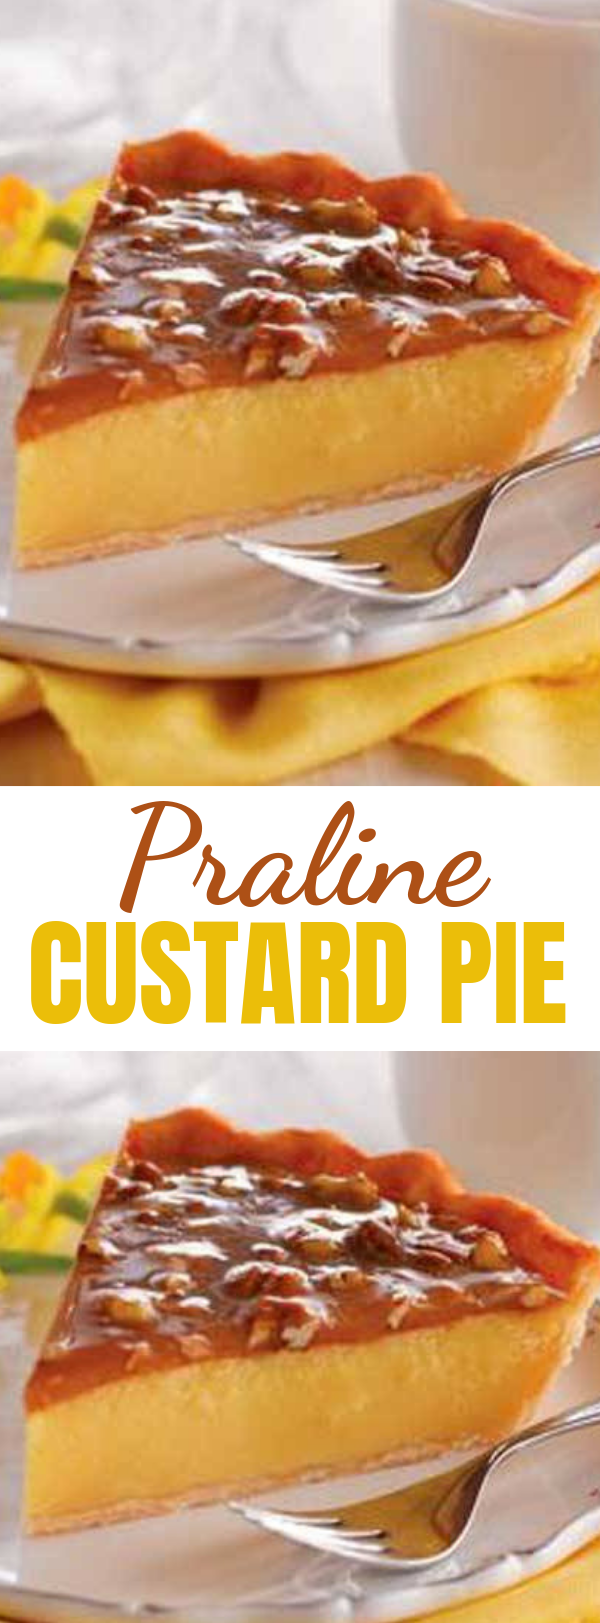 Praline Custard Pie - After the feast, after round two, before the coma: Would you like a slice of pie? #pie #pralinepie #custardpie #praline